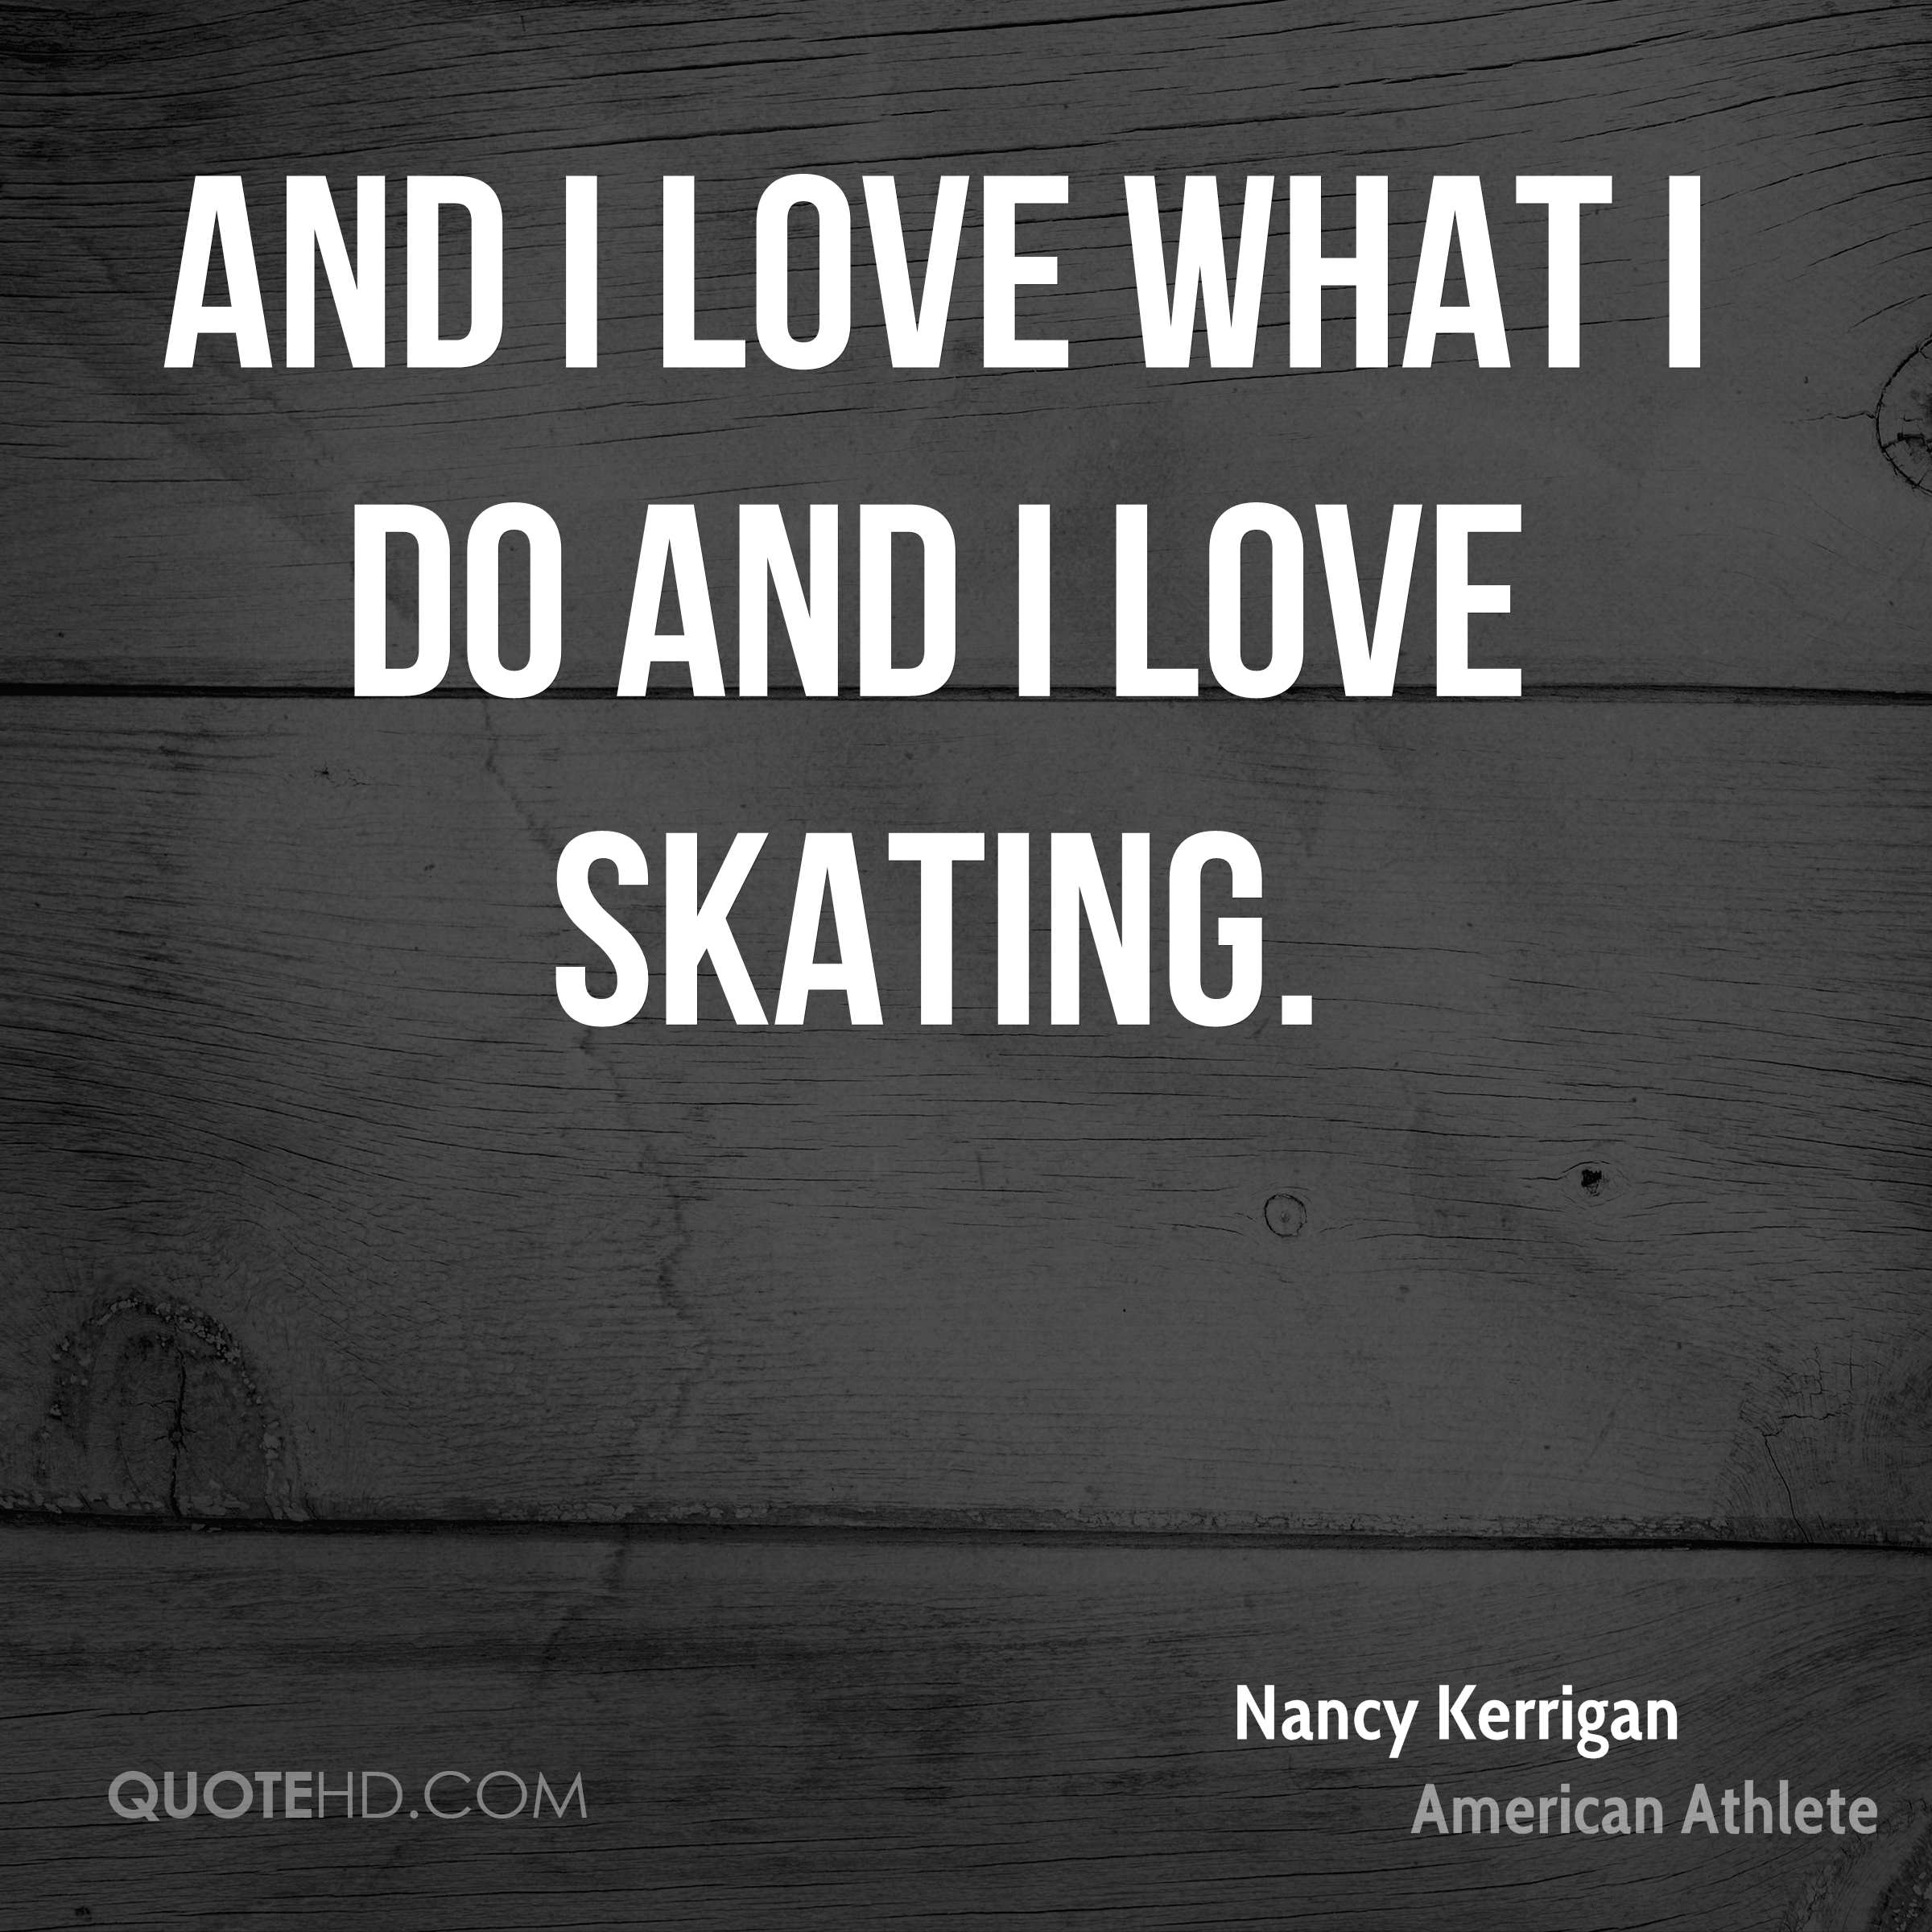 And I love what I do and I love skating.